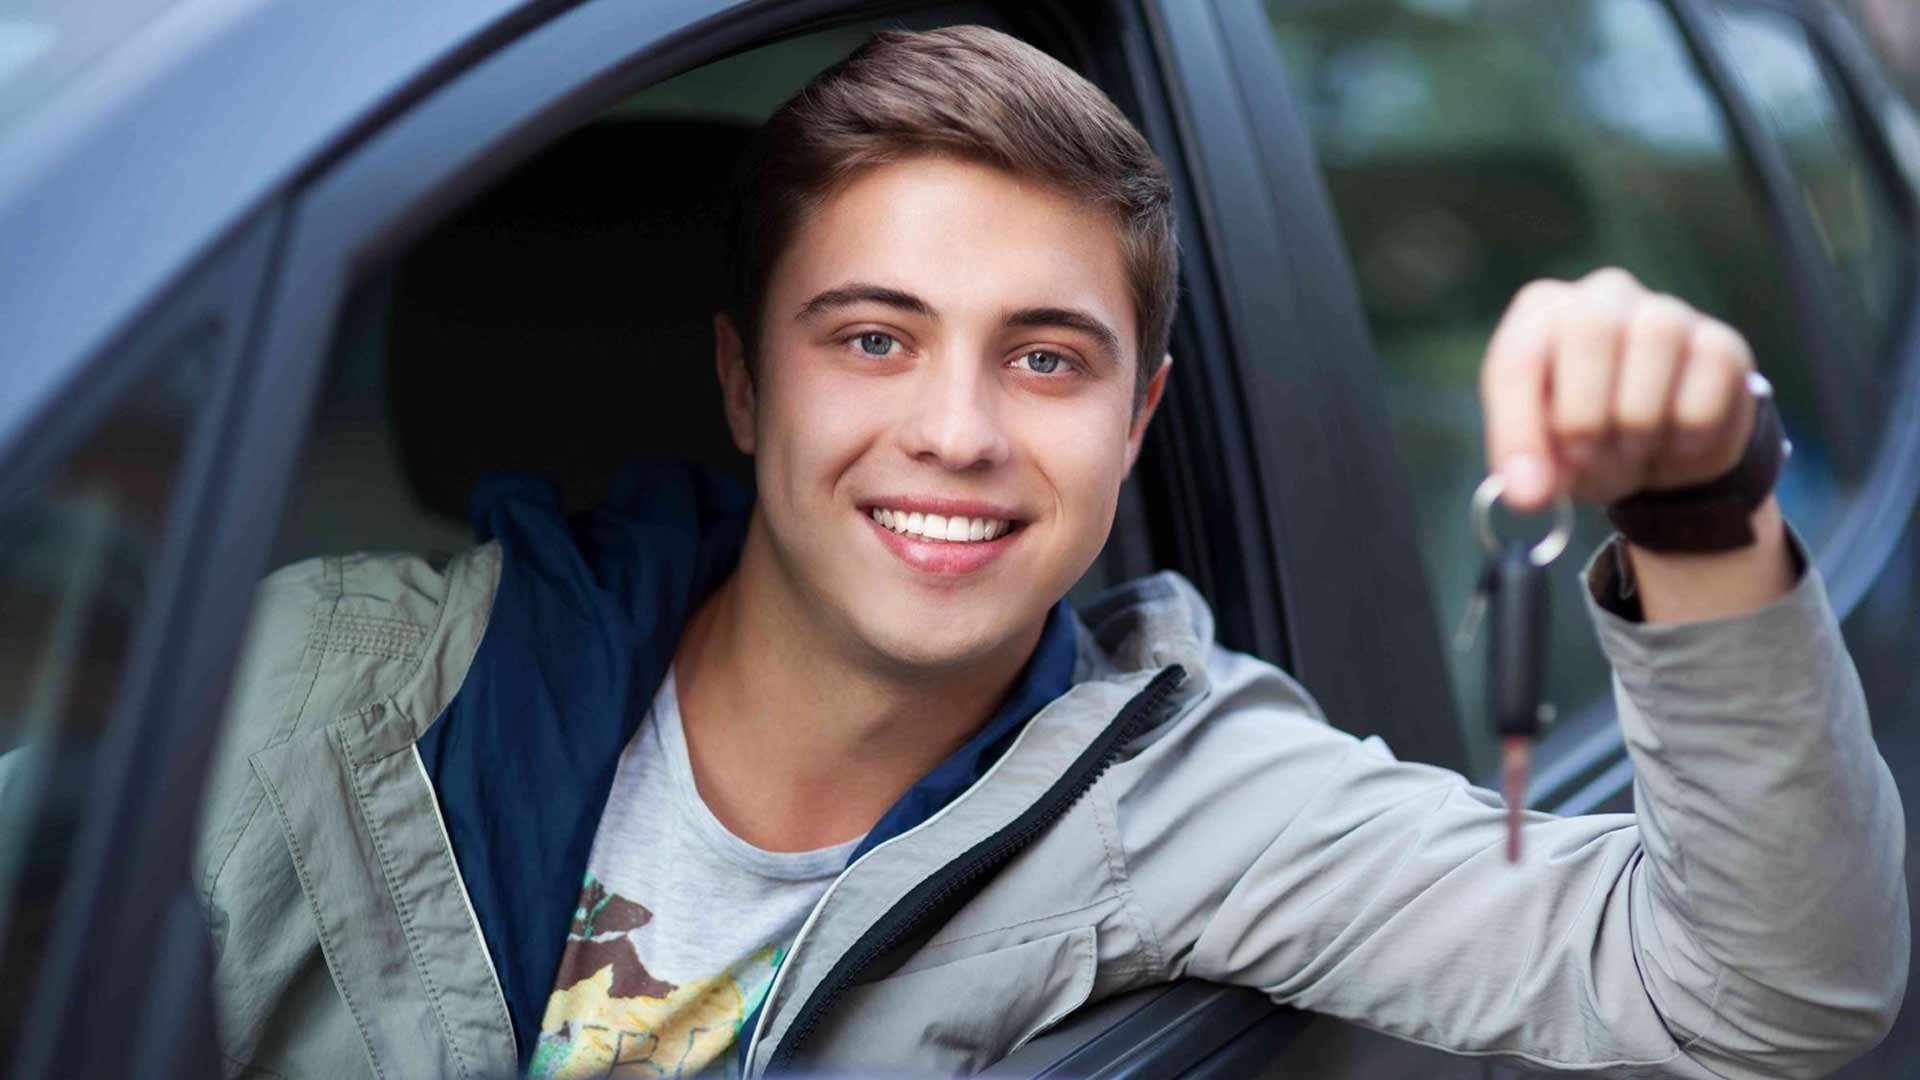 <h2>DRIVING SCHOOL - XATZIGIANNIS TASOS</h2><p>Diplomas of all categories, EEI, Diploma renewal, Extension, Loss, Revisions, KTEO</p><div class='bgslideshowmore'><a href='http://www.sxoliodigonxatzigiannis.gr/more2.php?l=en&id=7845' >More...</a></div>